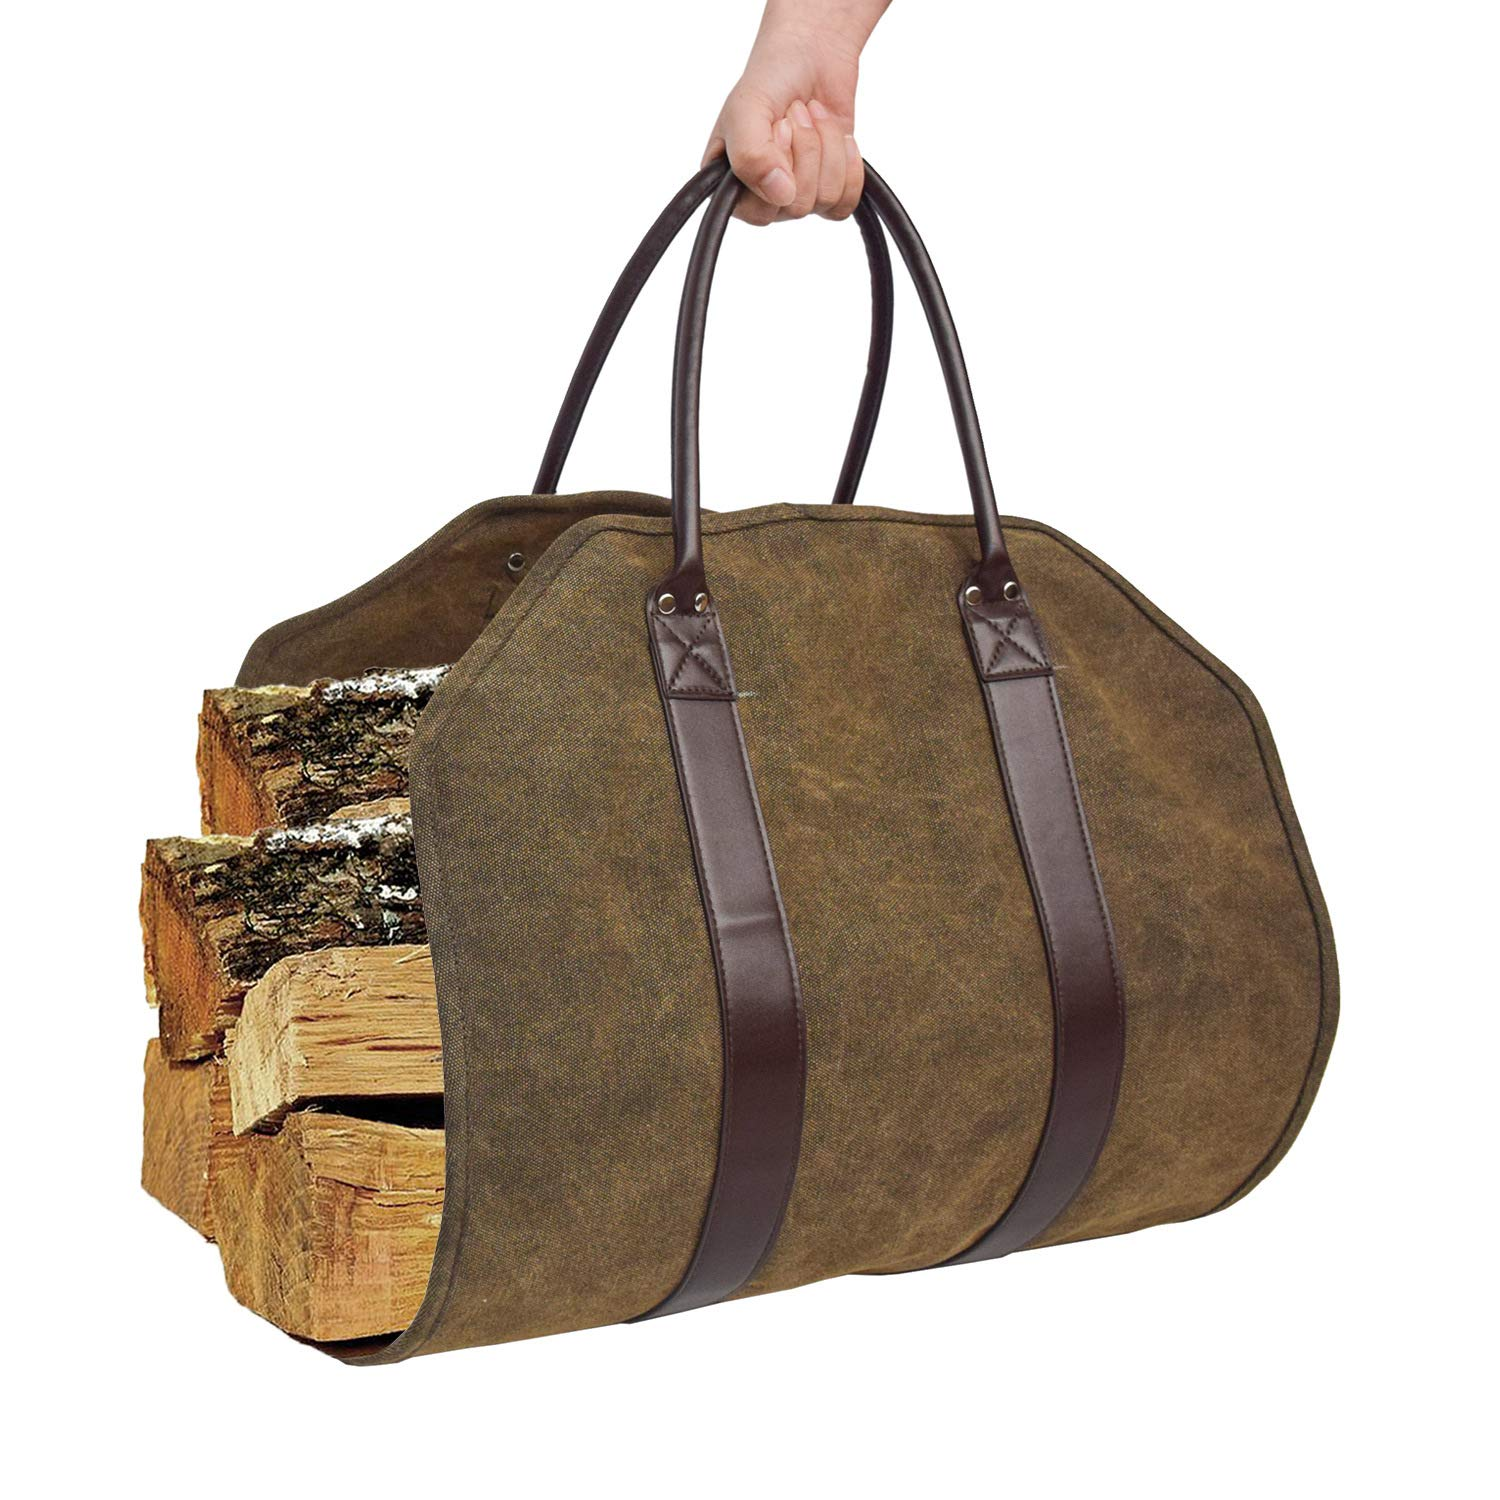 Ationgle Canvas Firewood Carrier, Large Log Carrier Tote Bag with Leather Handles, Heavy Duty Durable Firewood Carring with Security Strap for Fireplace Campfire, Gift for Campers by Ationgle